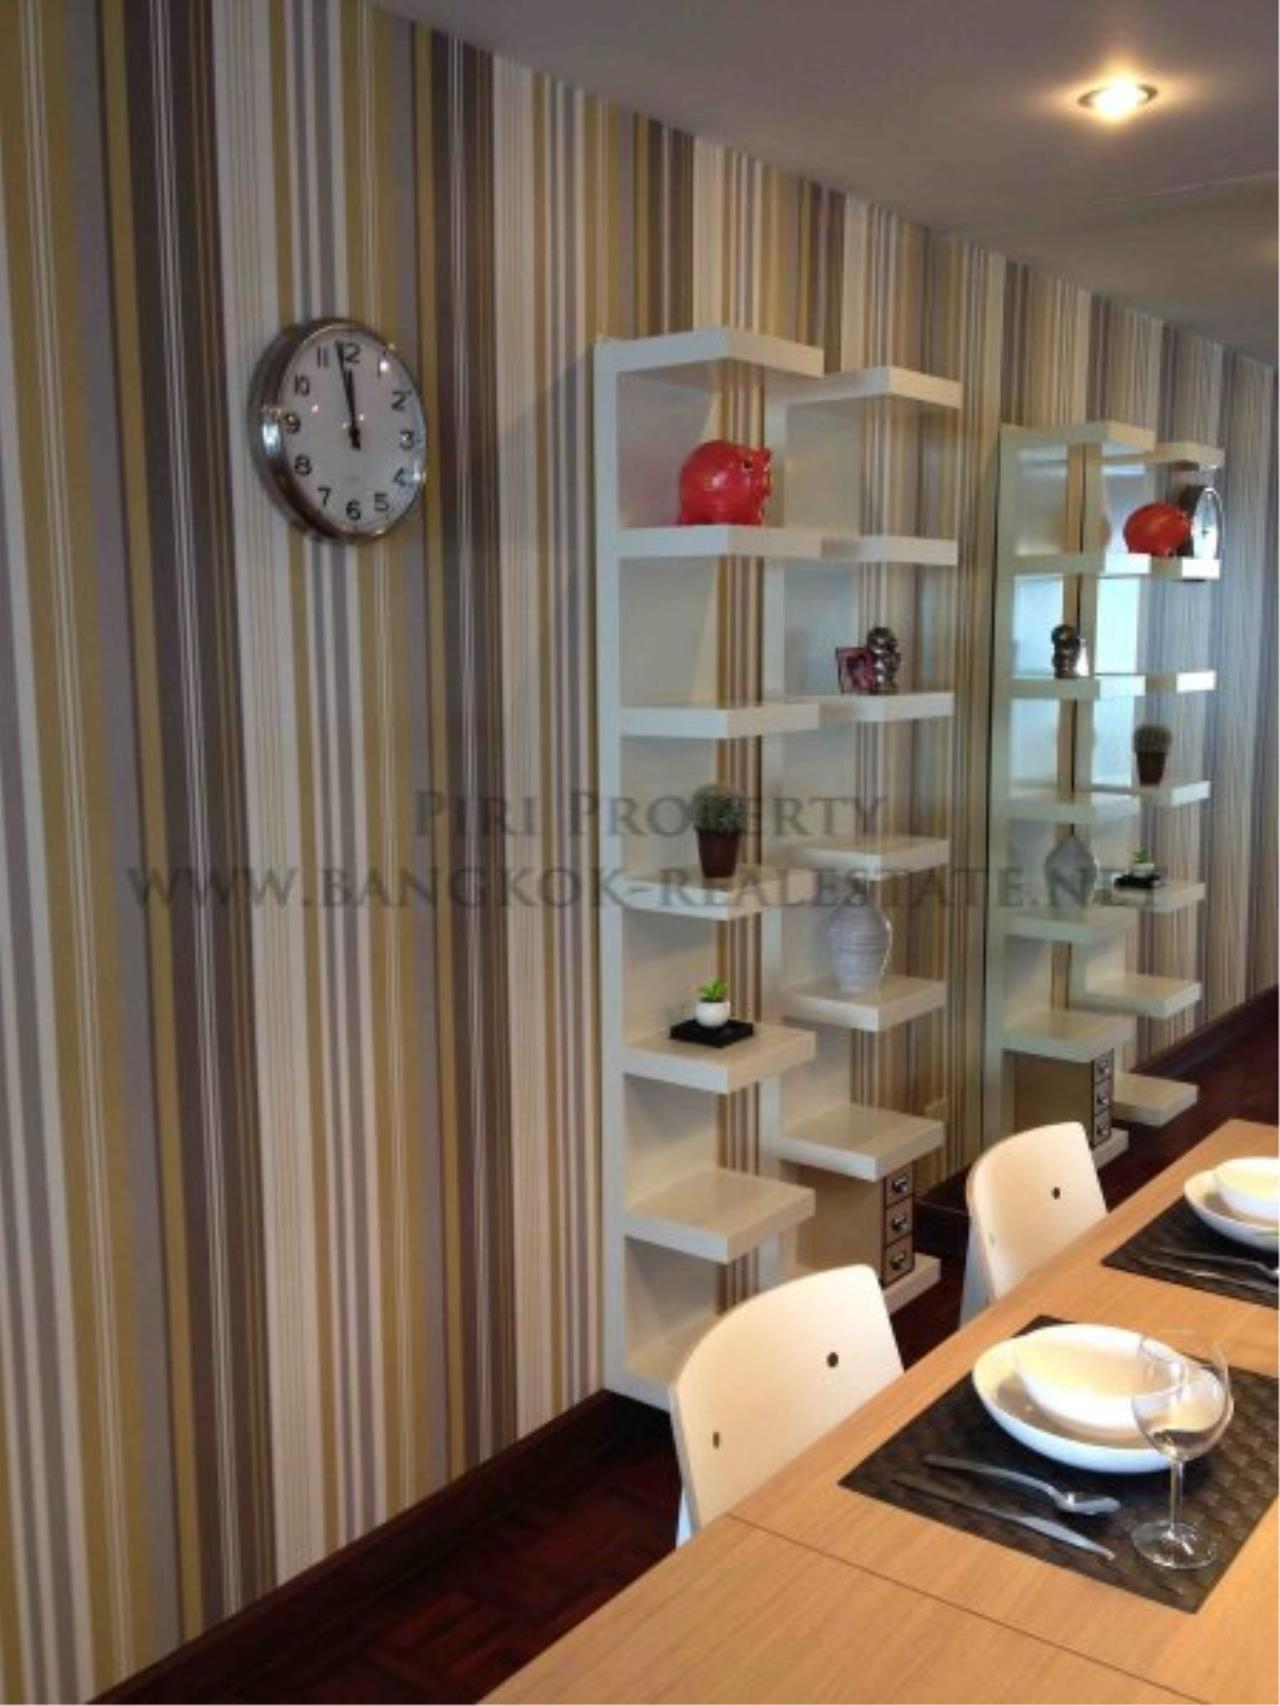 Piri Property Agency's DS Tower 2 - Renovated and Condo for Sale - 3BR 3